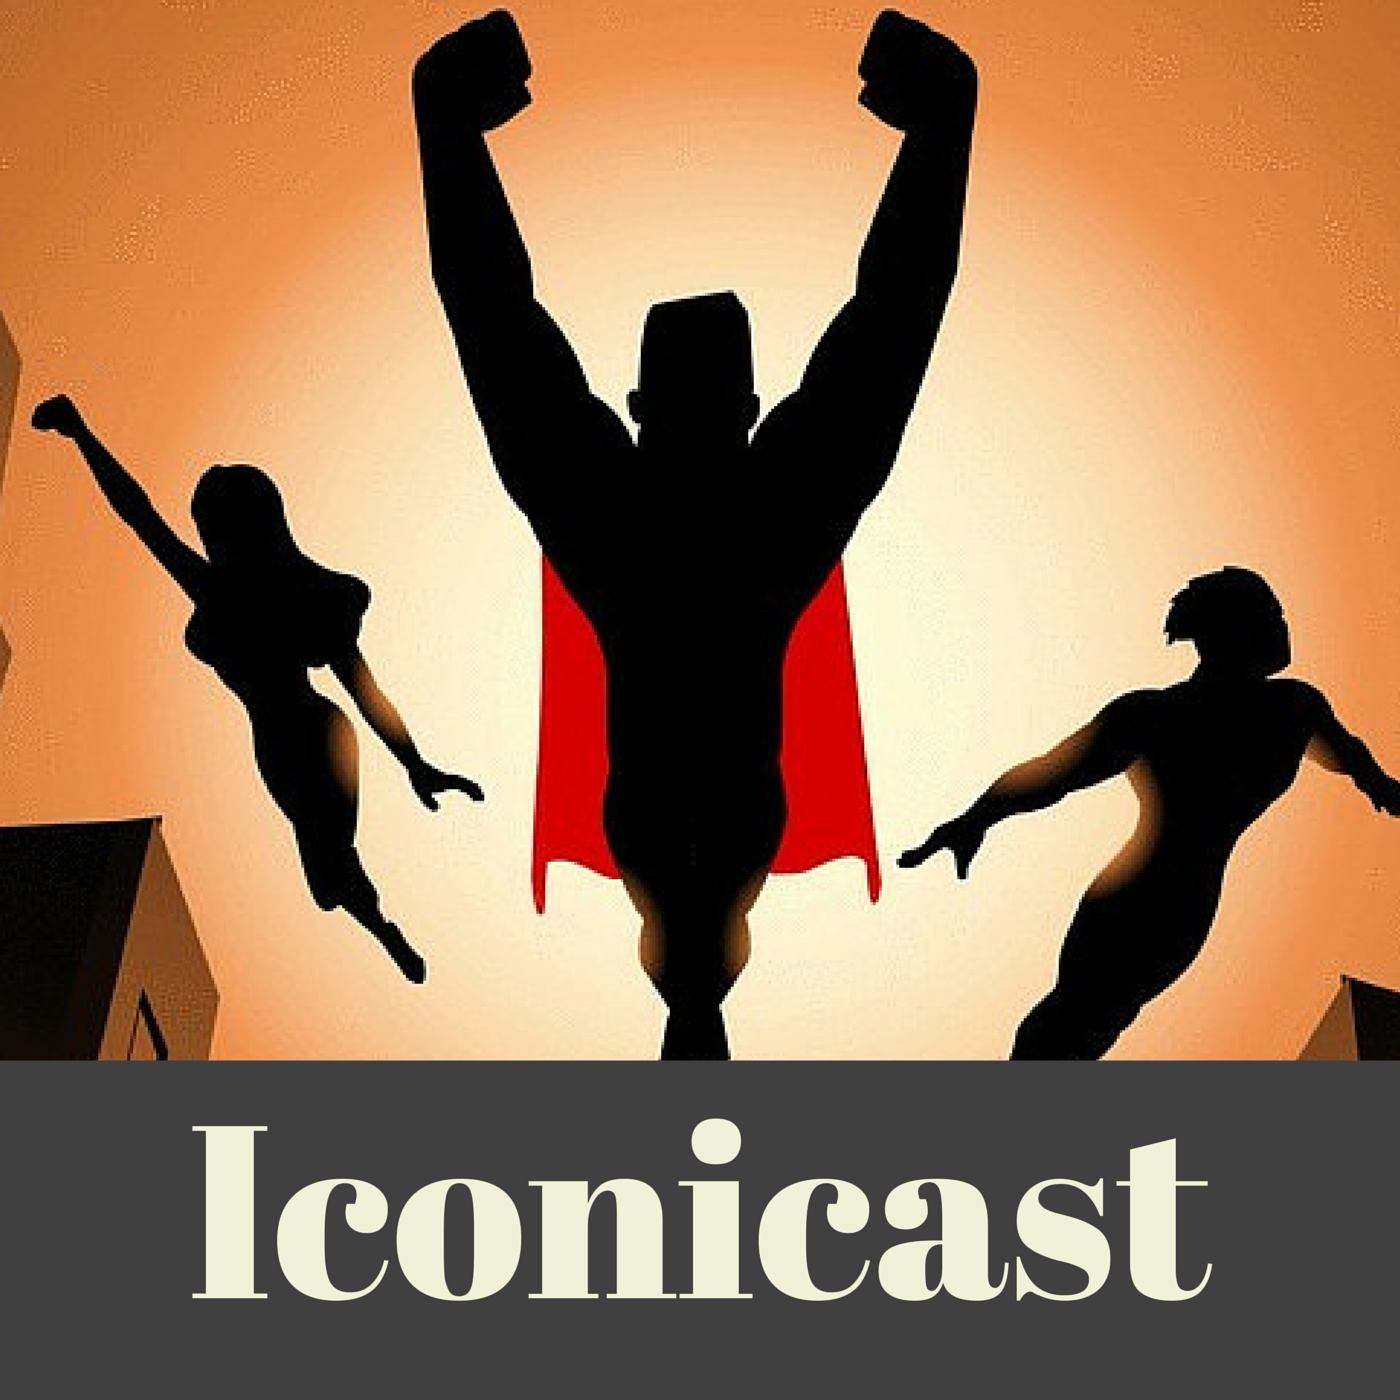 Iconicast